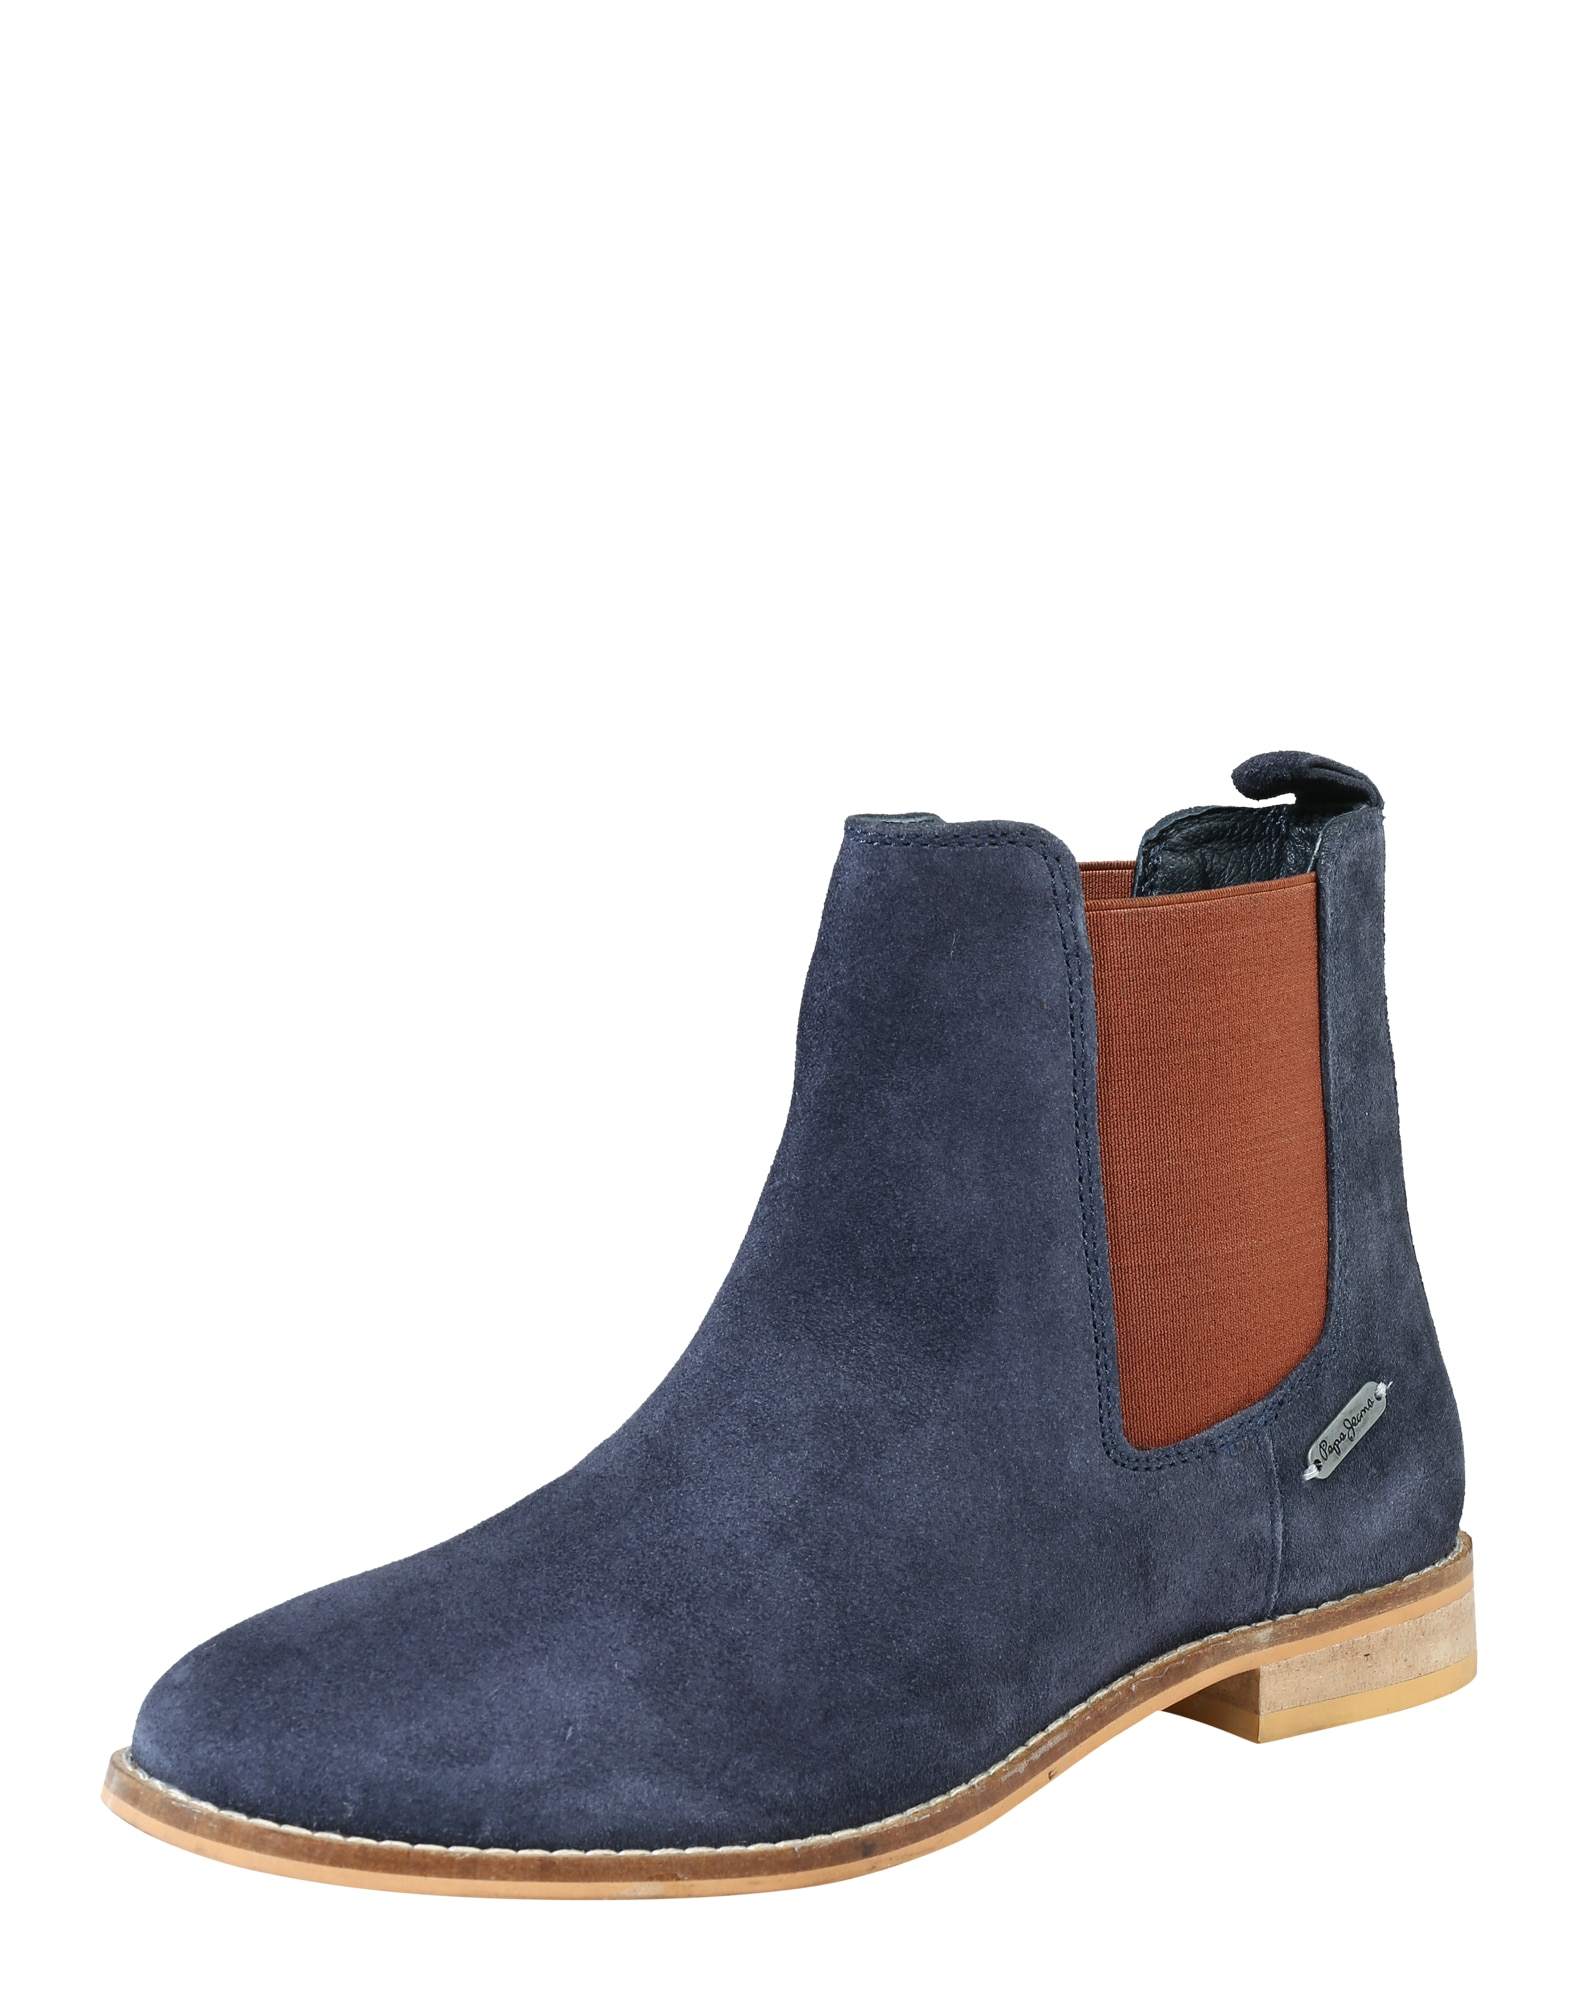 Pepe Jeans Dames Chelsea boots Galp navy roestbruin